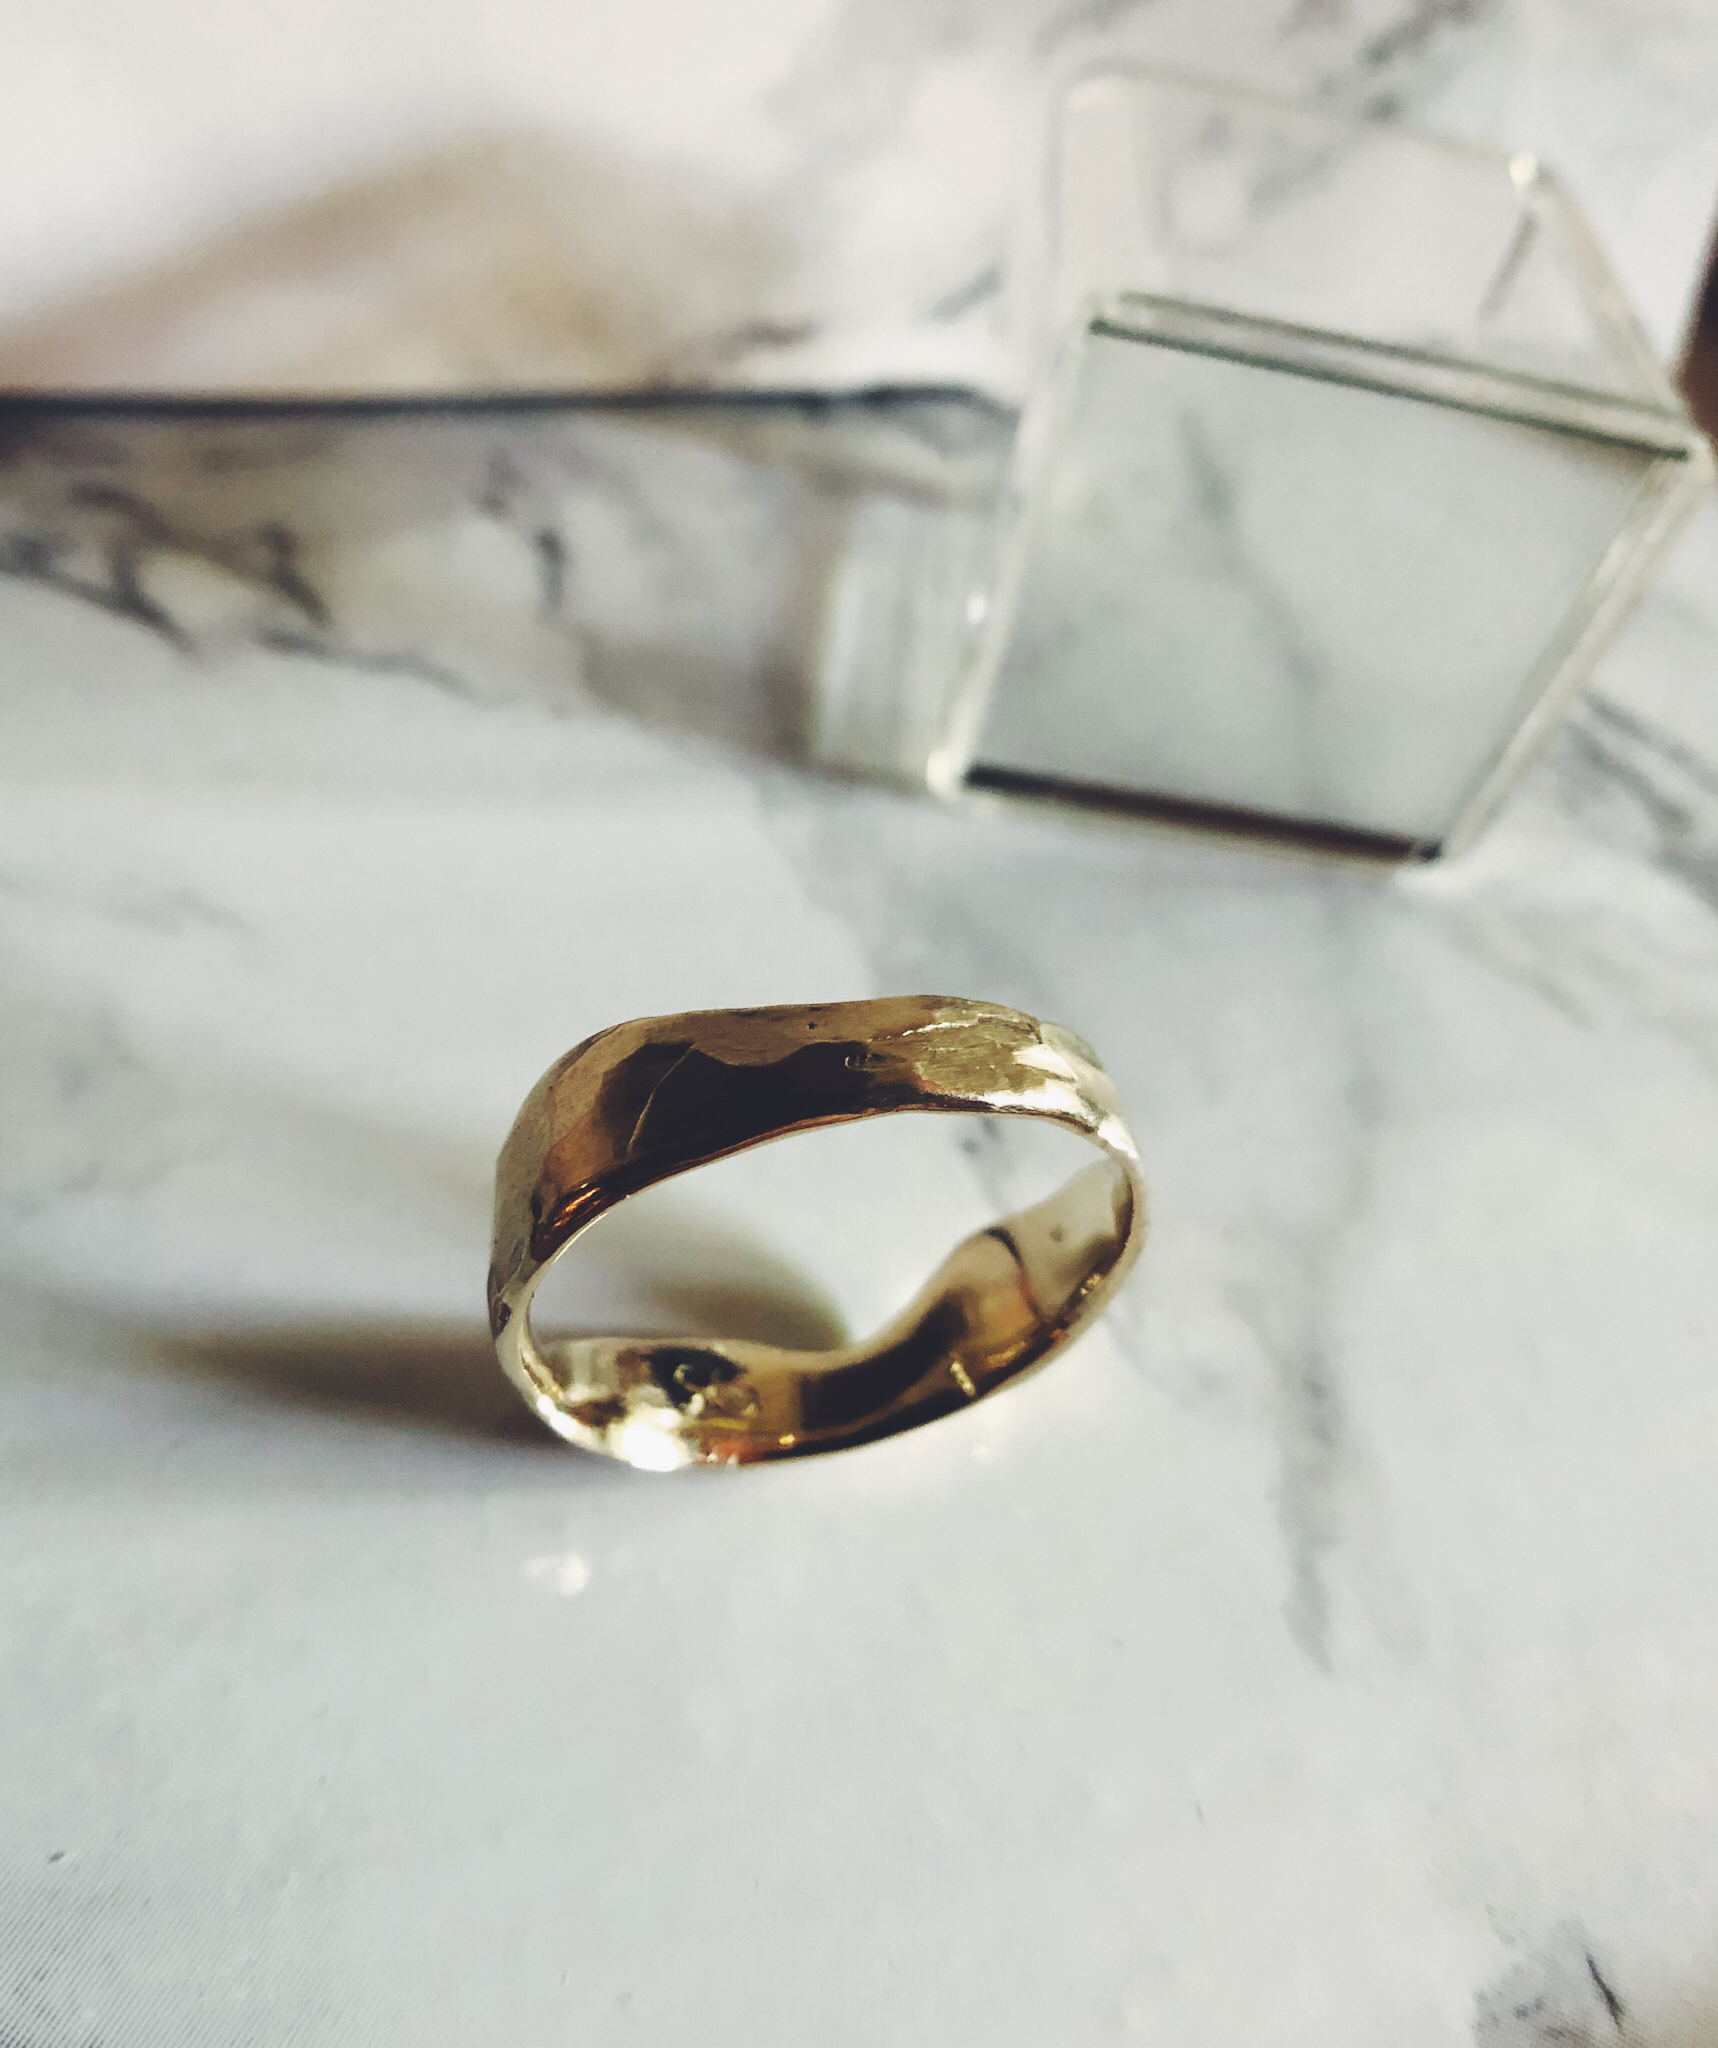 Recycled 14k Gold wedding band